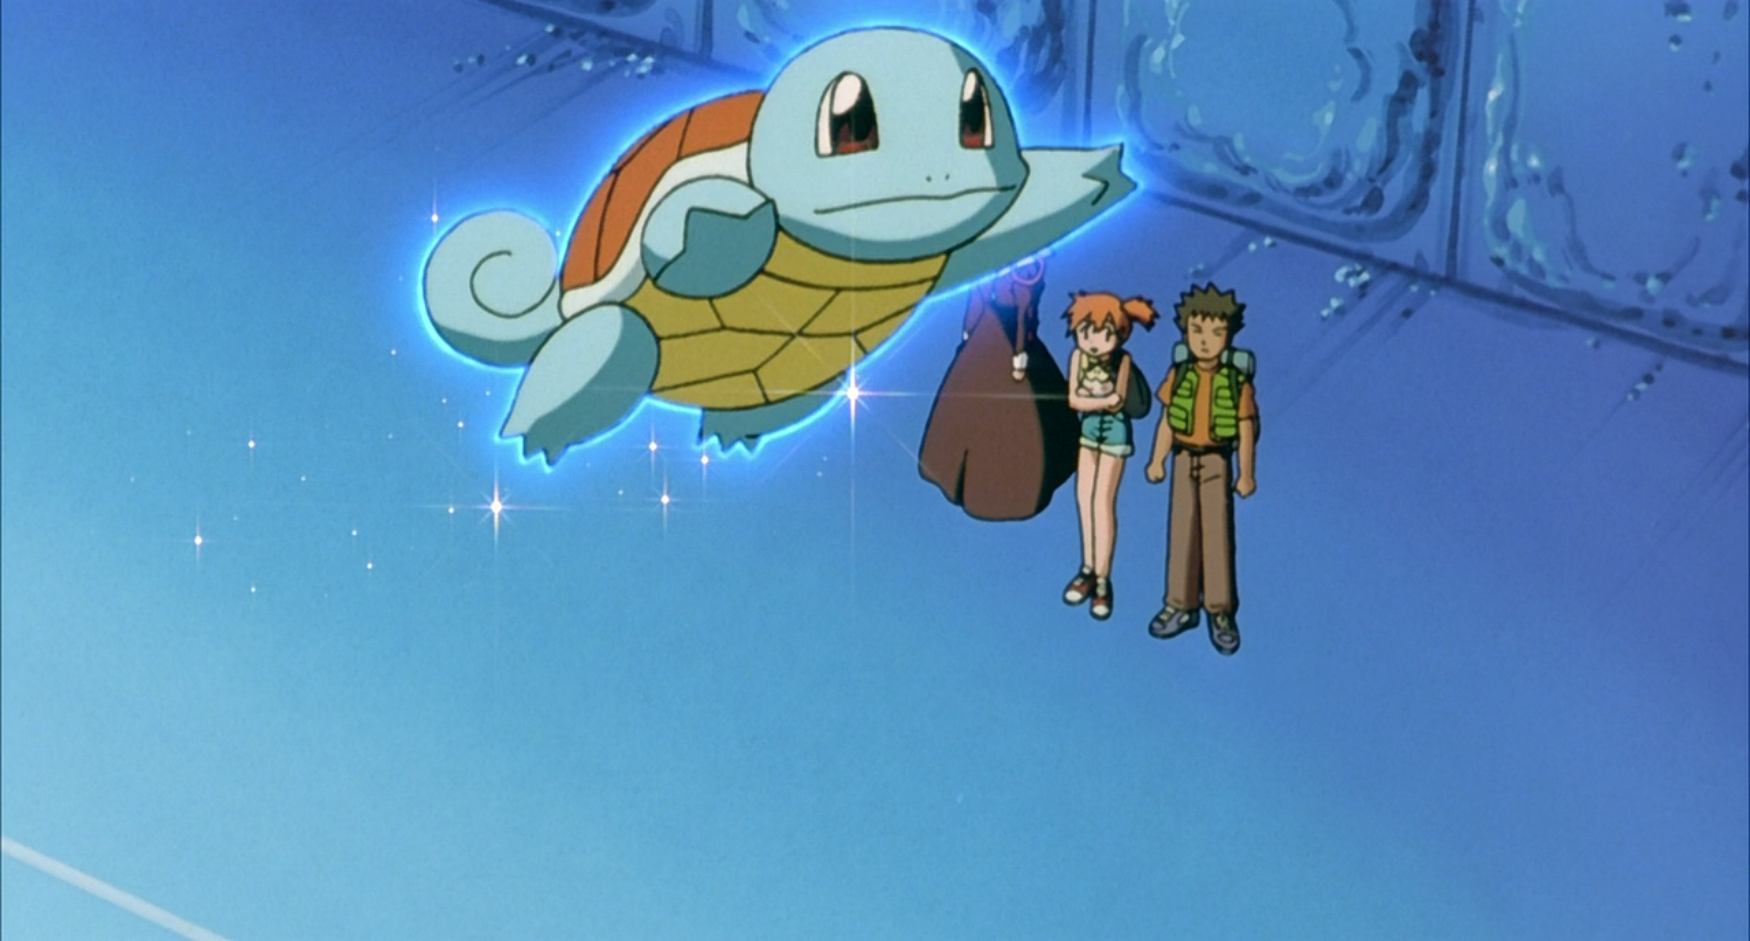 Squirtletwo